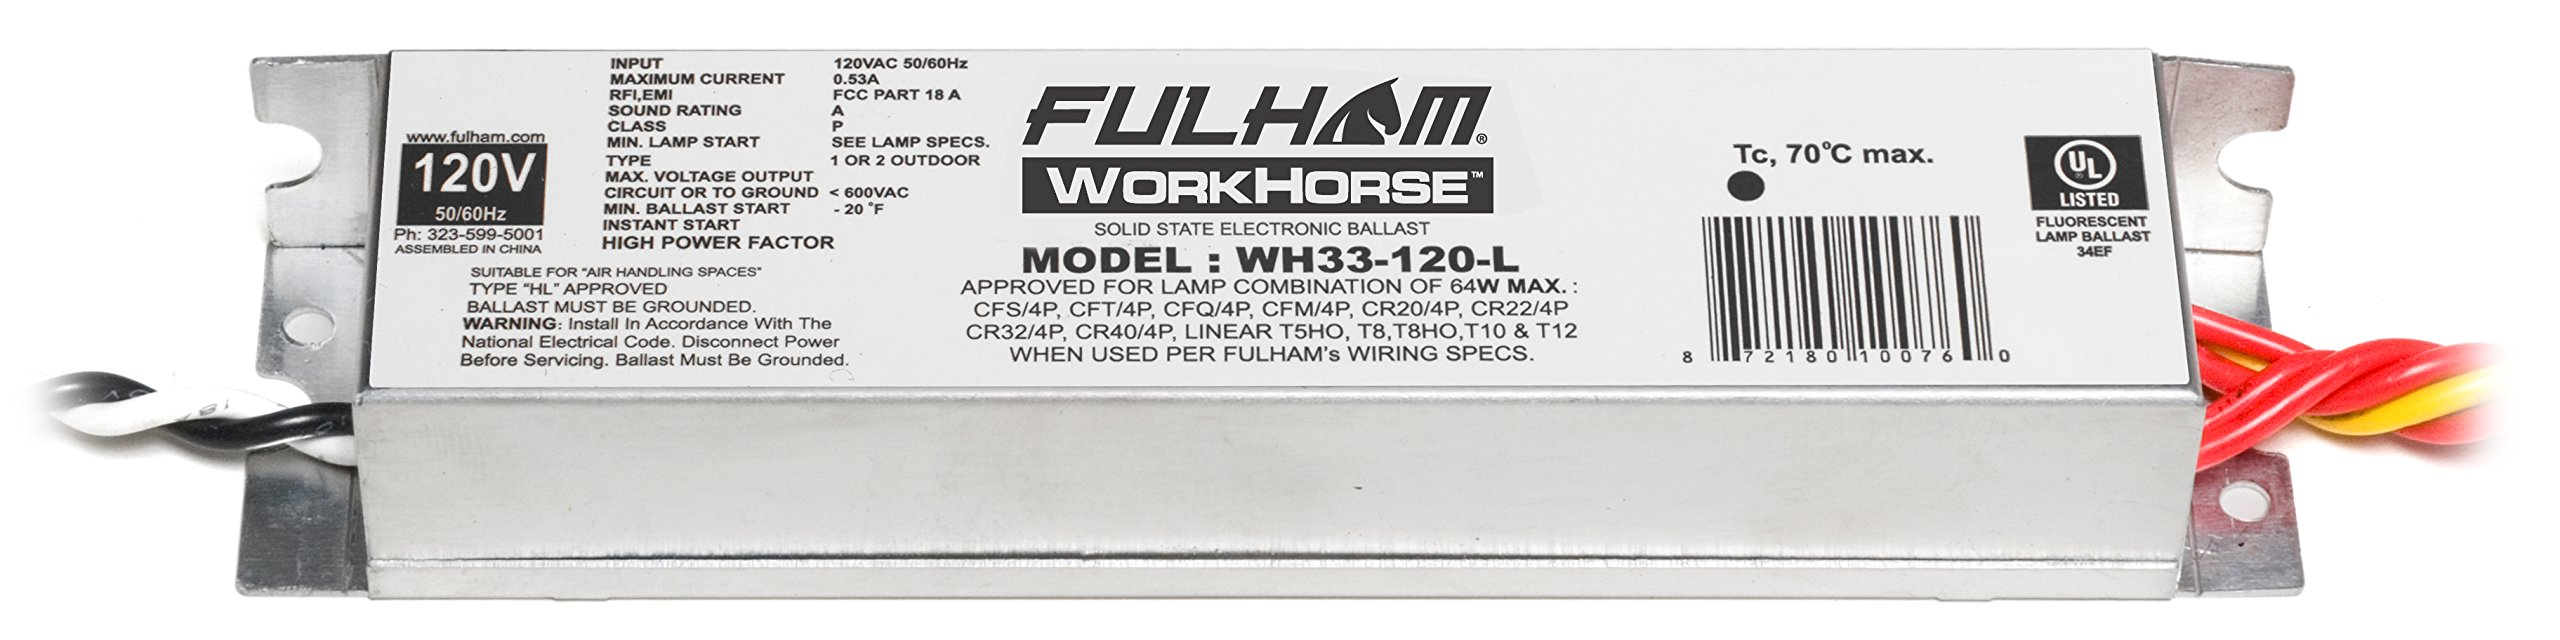 Fulham WH33-120-L Workhorse Adaptable Ballast